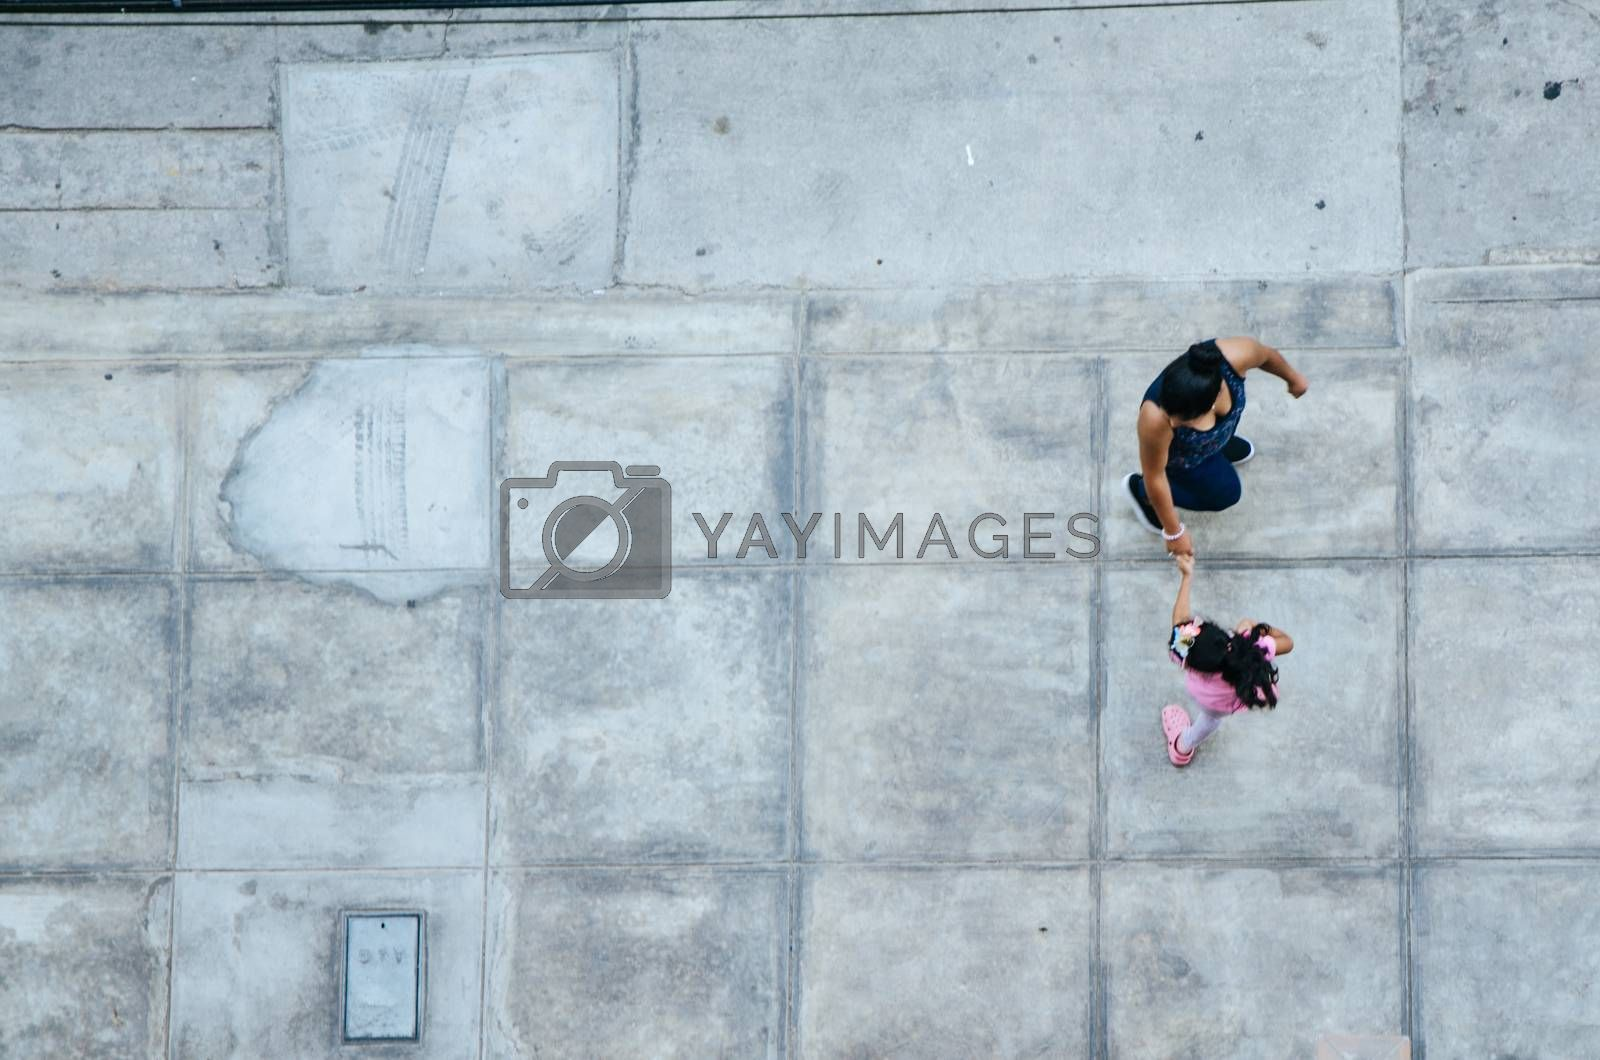 Mother and daughter walking on the pavement. View from above